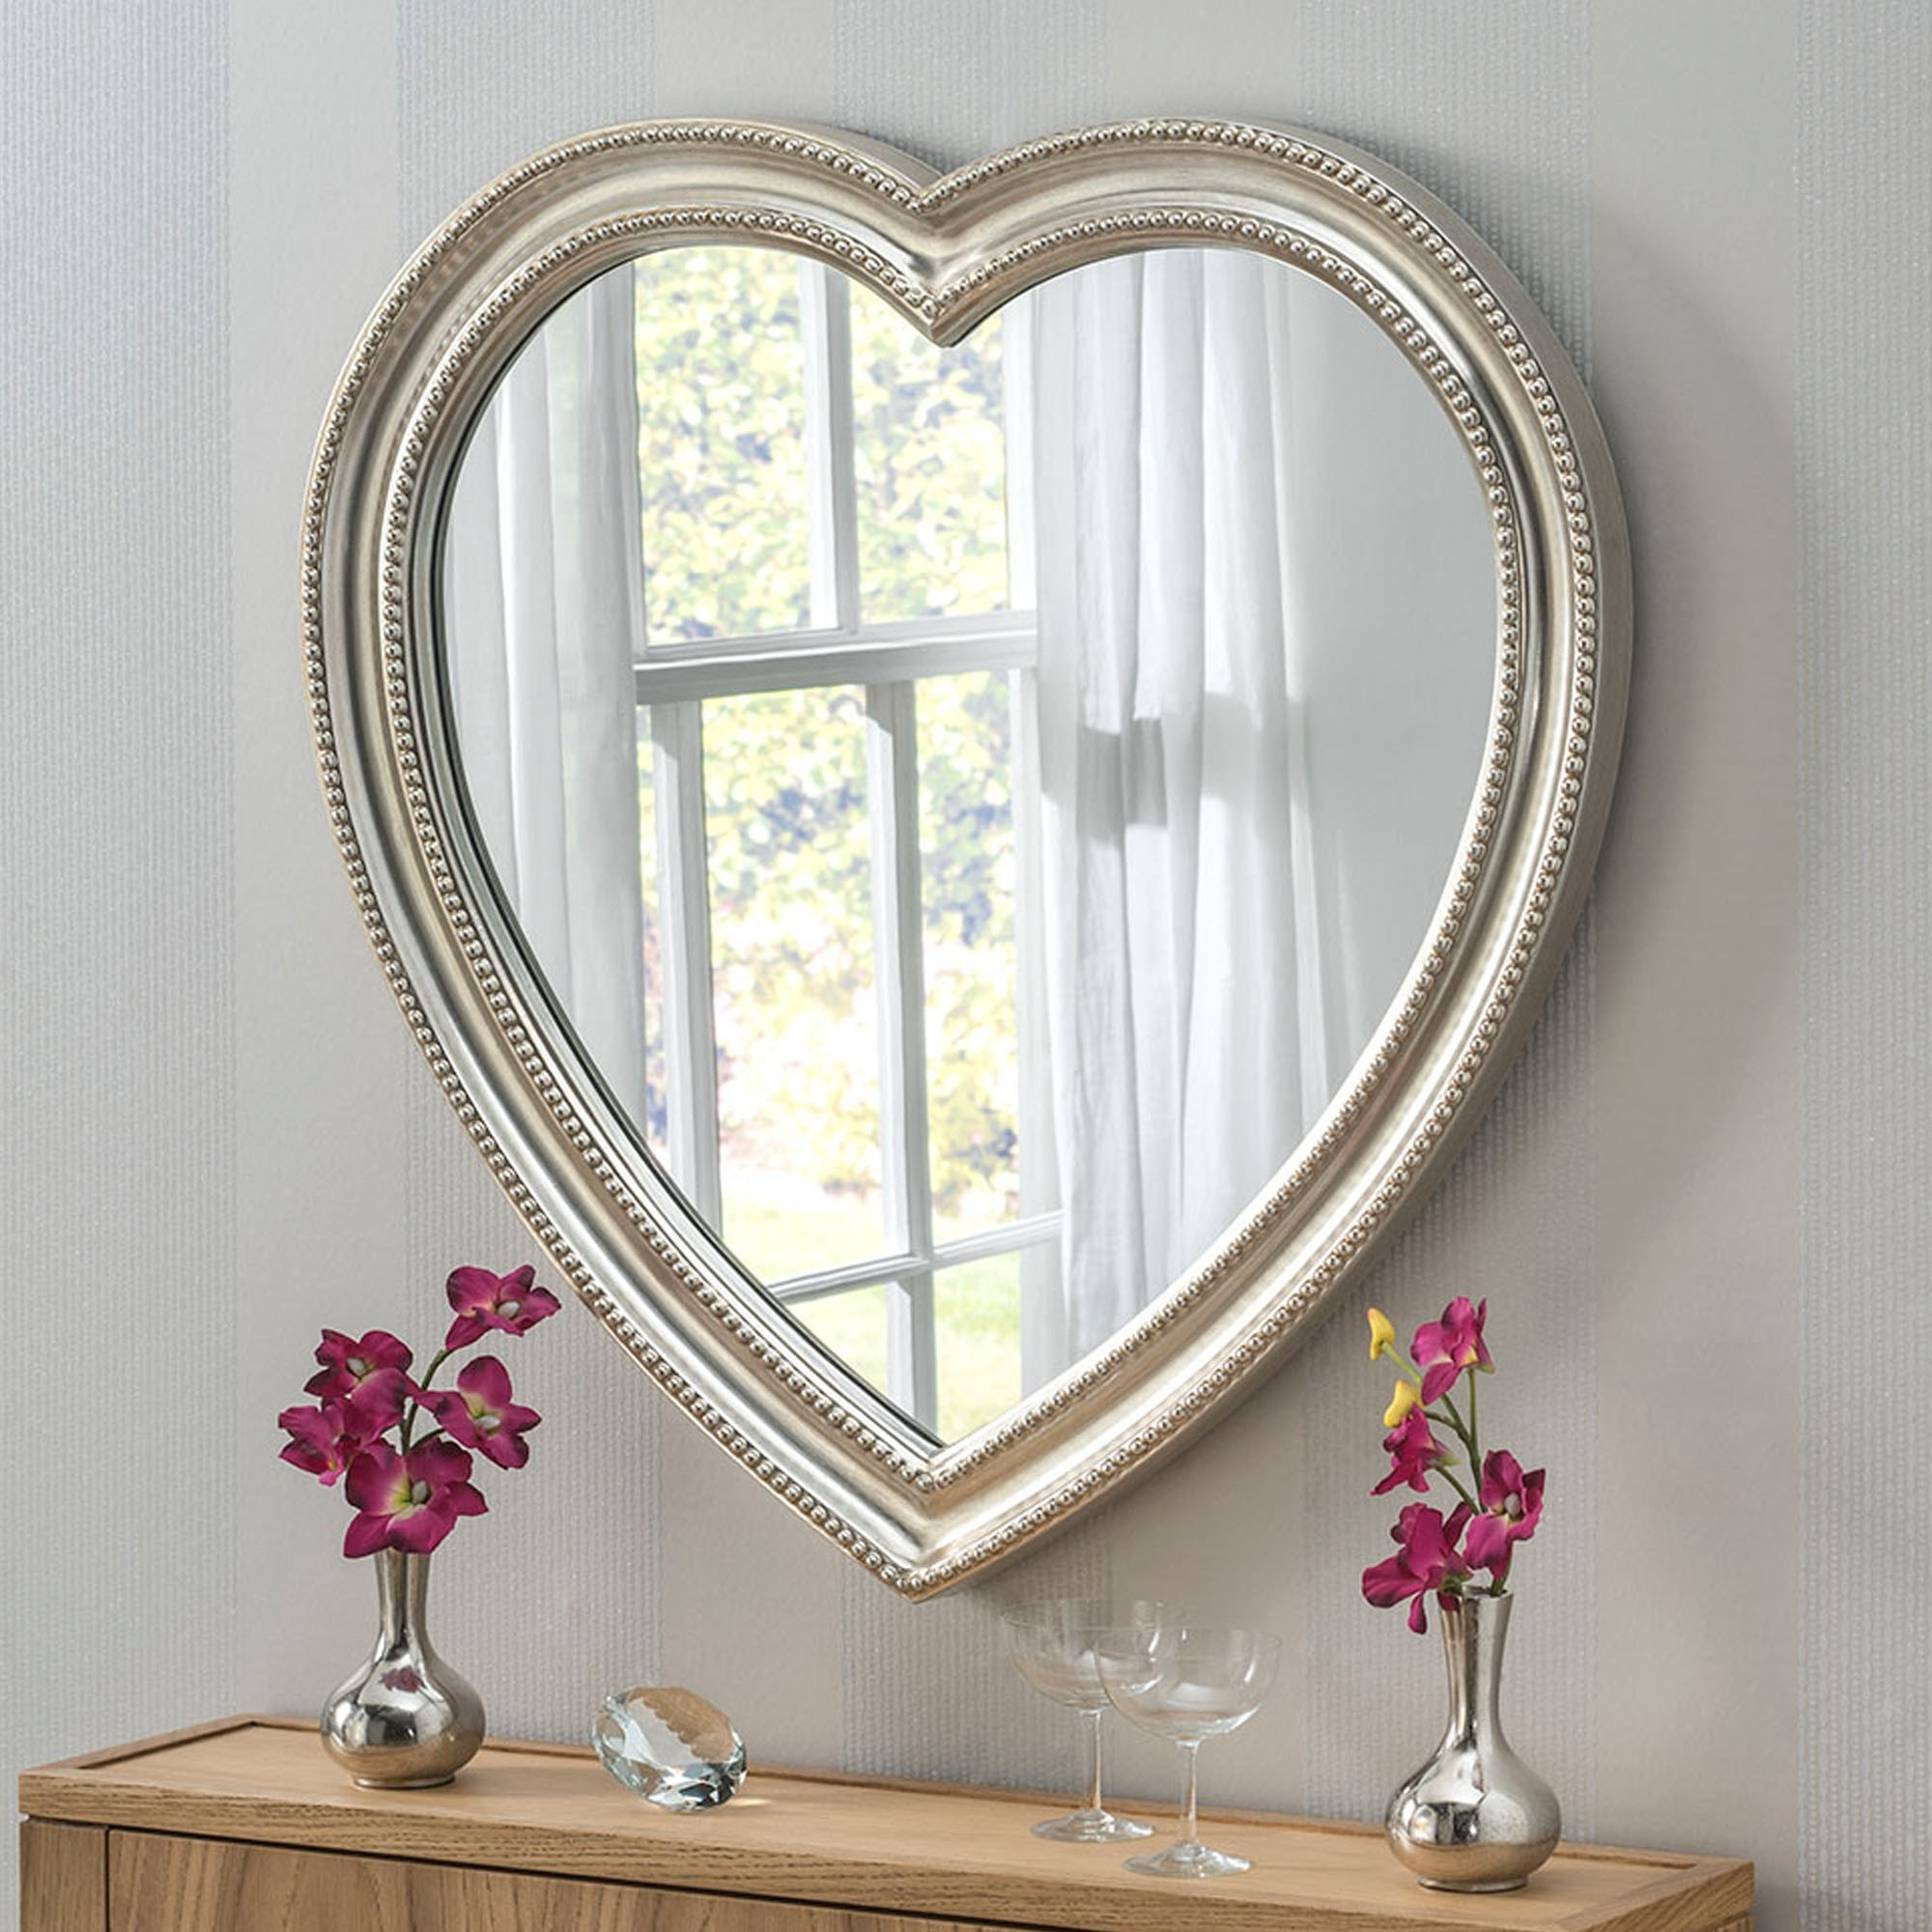 Popular Heart Wall Mirrors Throughout Contemporary Silver Heart Wall Mirror (View 3 of 20)